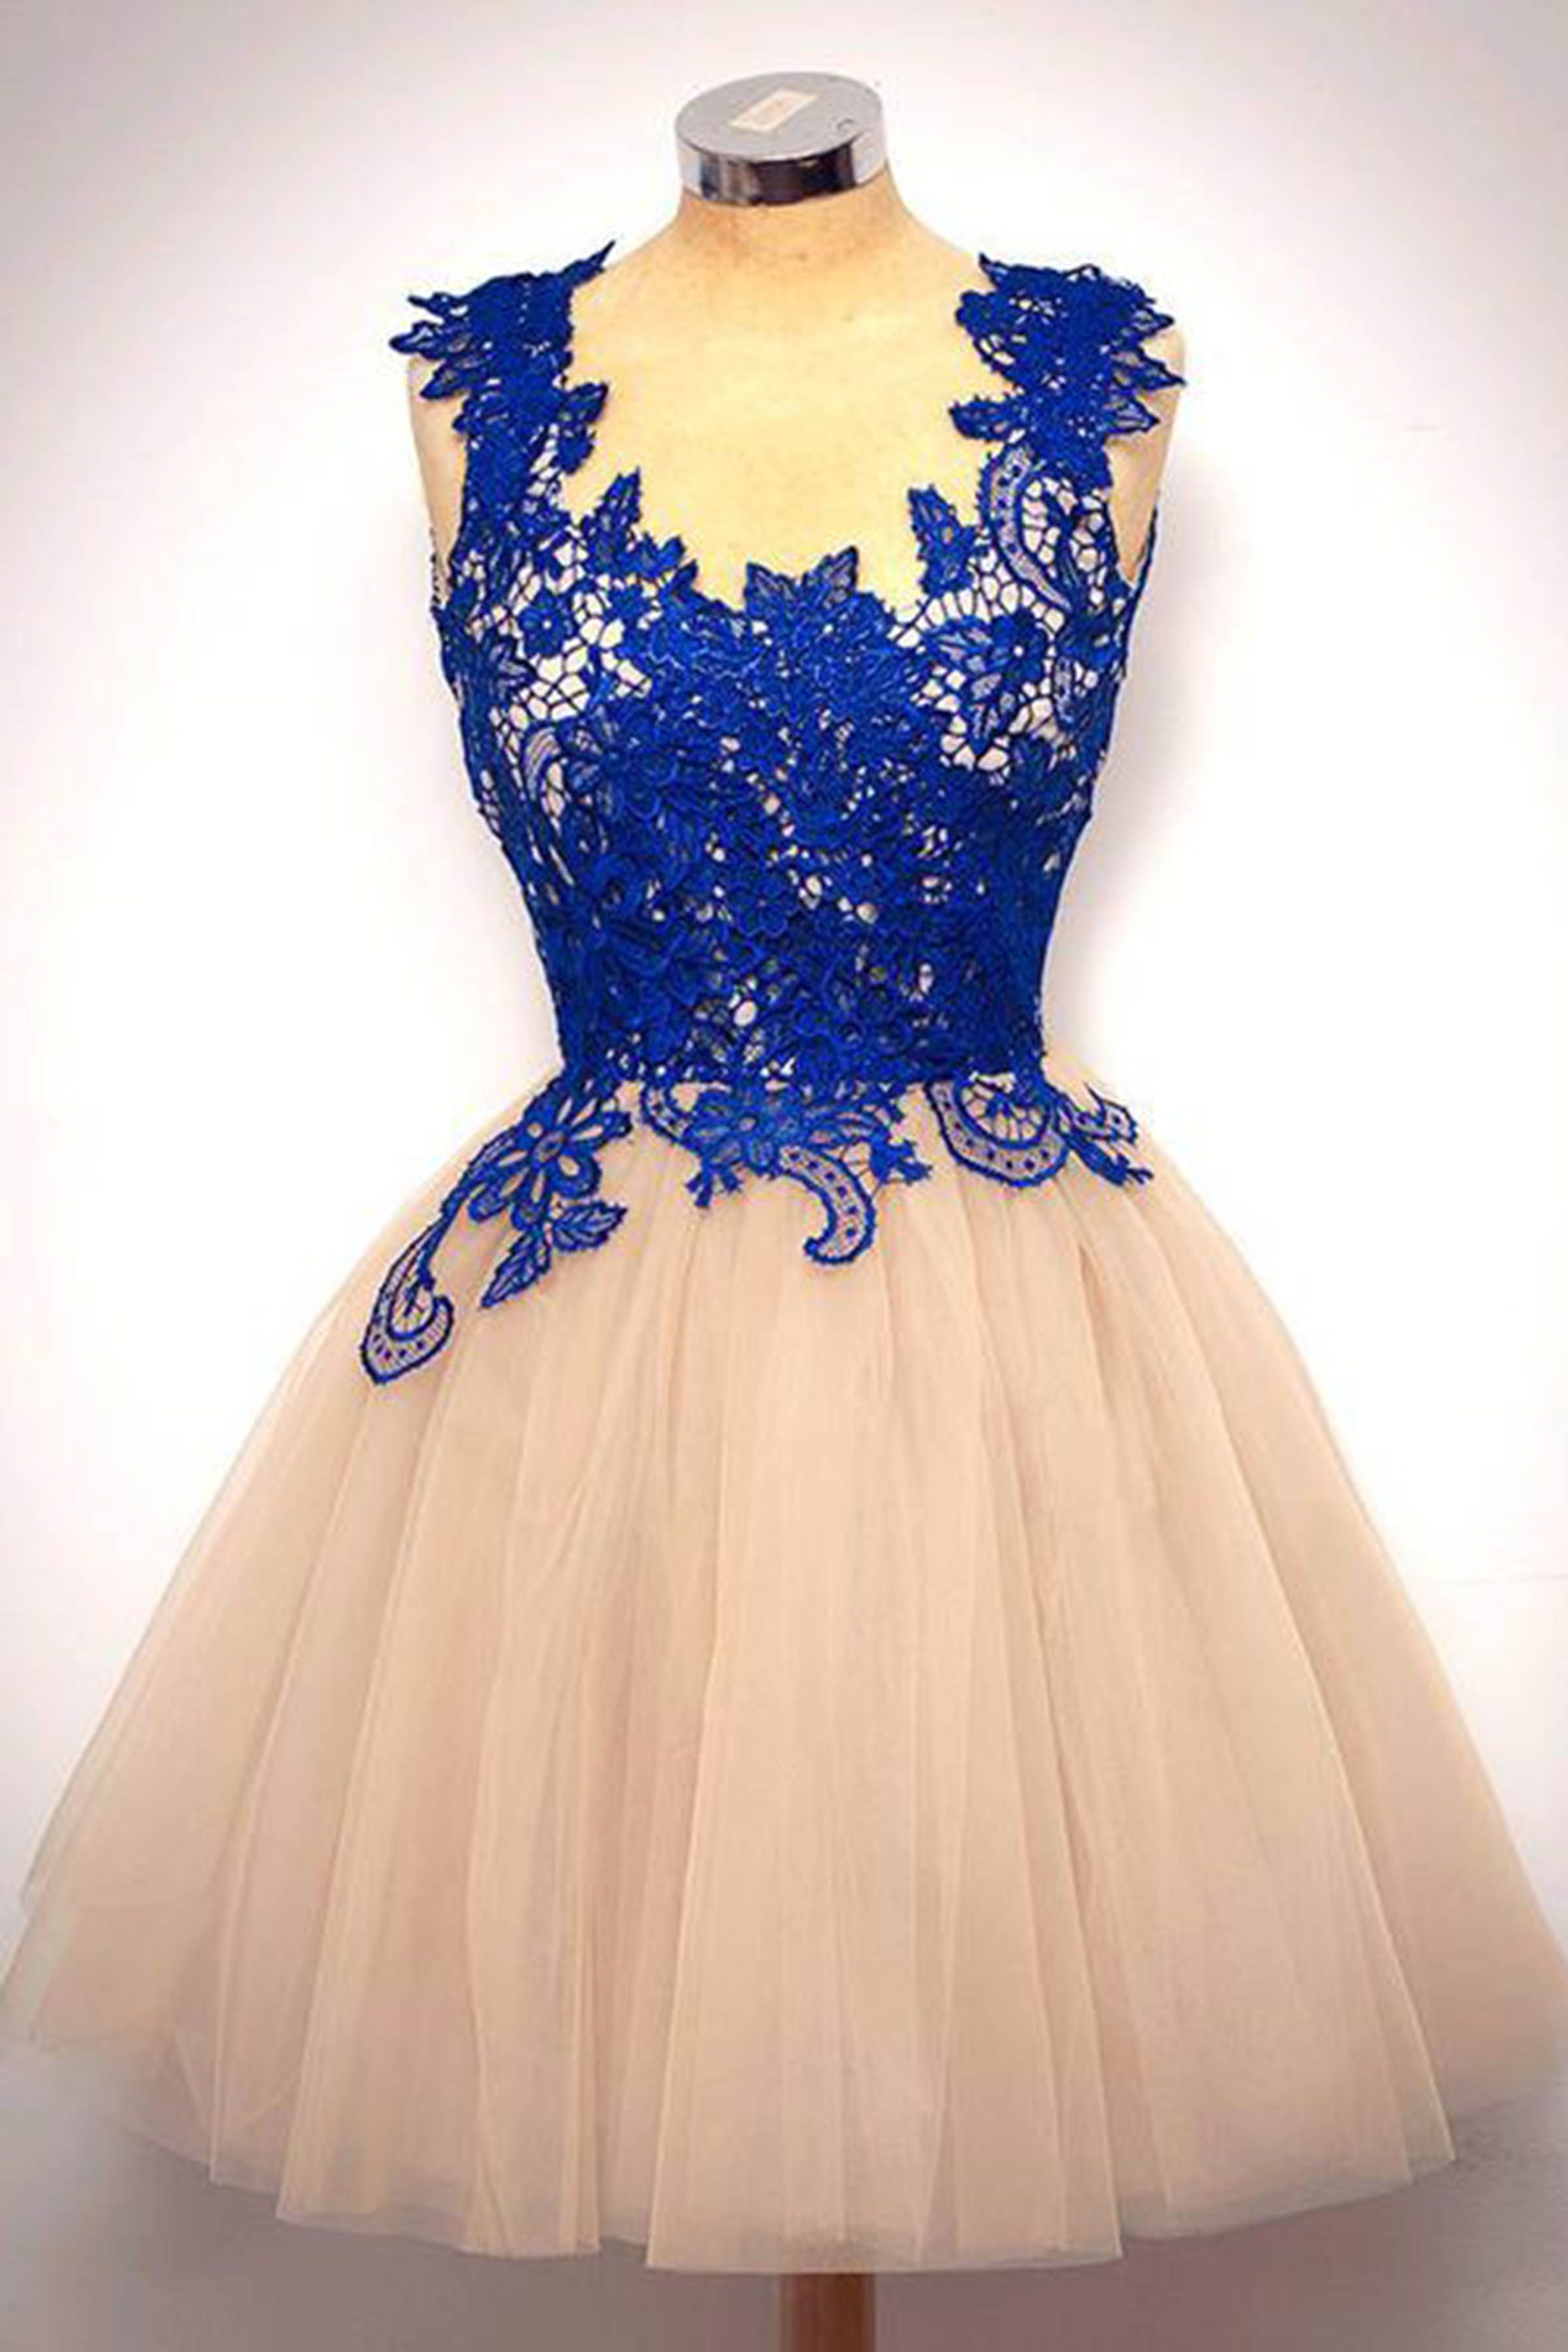 Dress up laundry kebon jeruk - Cute Blue Lace Champagne Tulle Prom Dress Homecoming Dress Short Party Dress For Teens